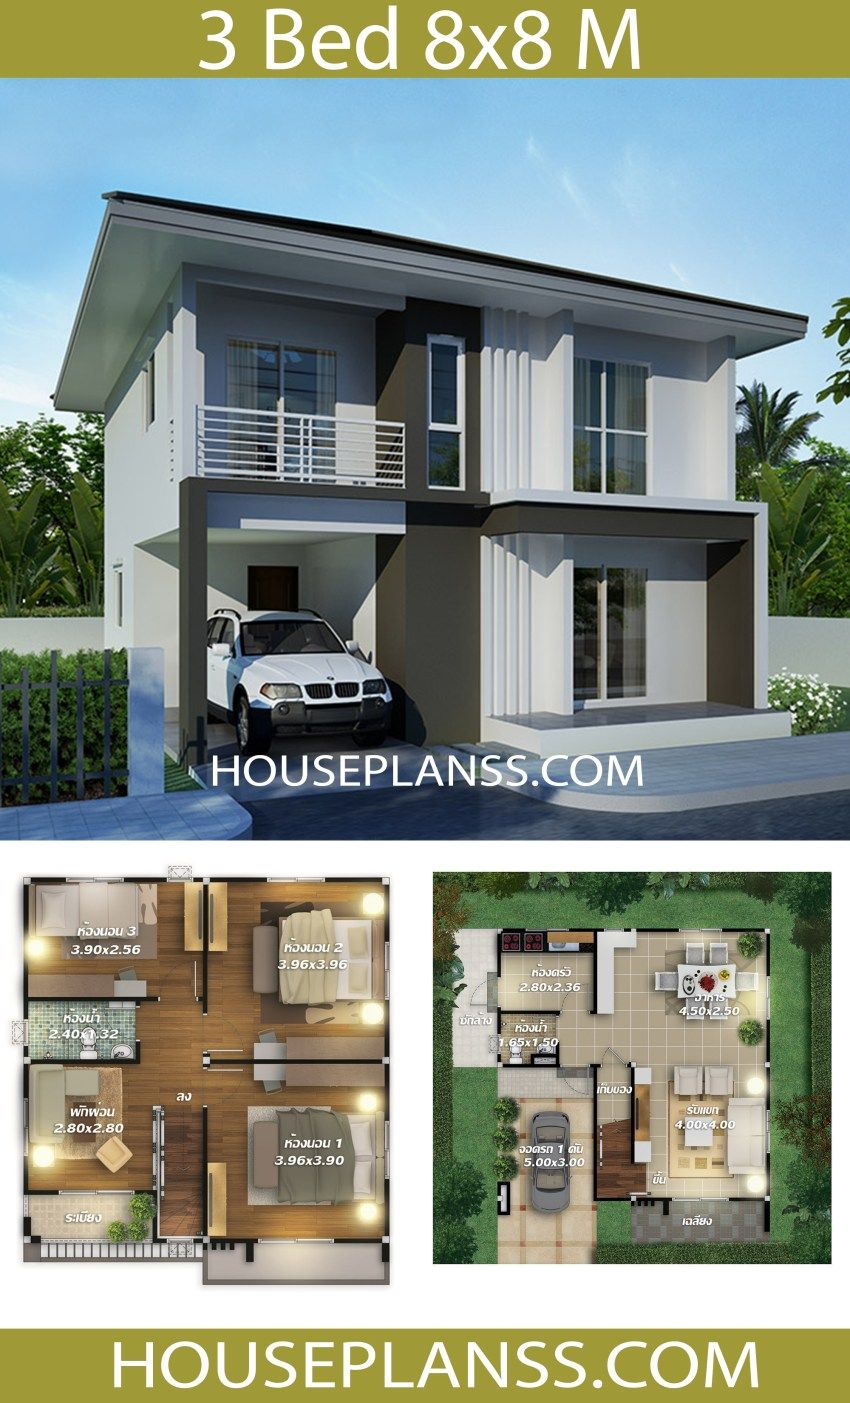 House Plans Idea 8x8 With 3 Bedrooms House Plans Sam House Arch Design Beautiful House Plans Model House Plan